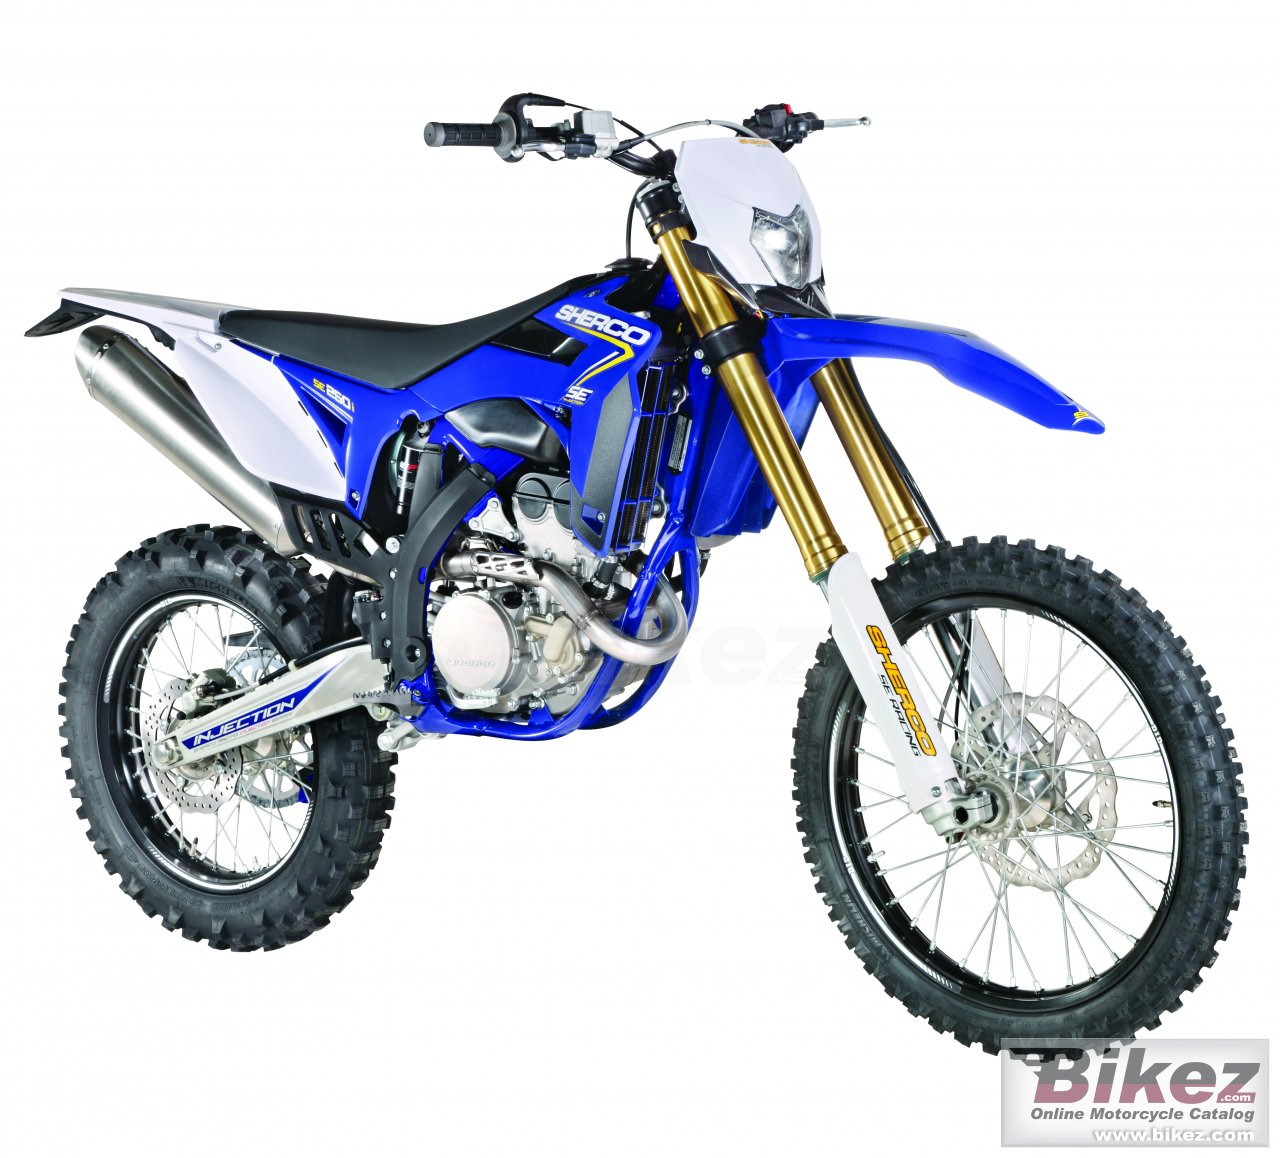 Big Sherco se 250i enduro picture and wallpaper from Bikez.com